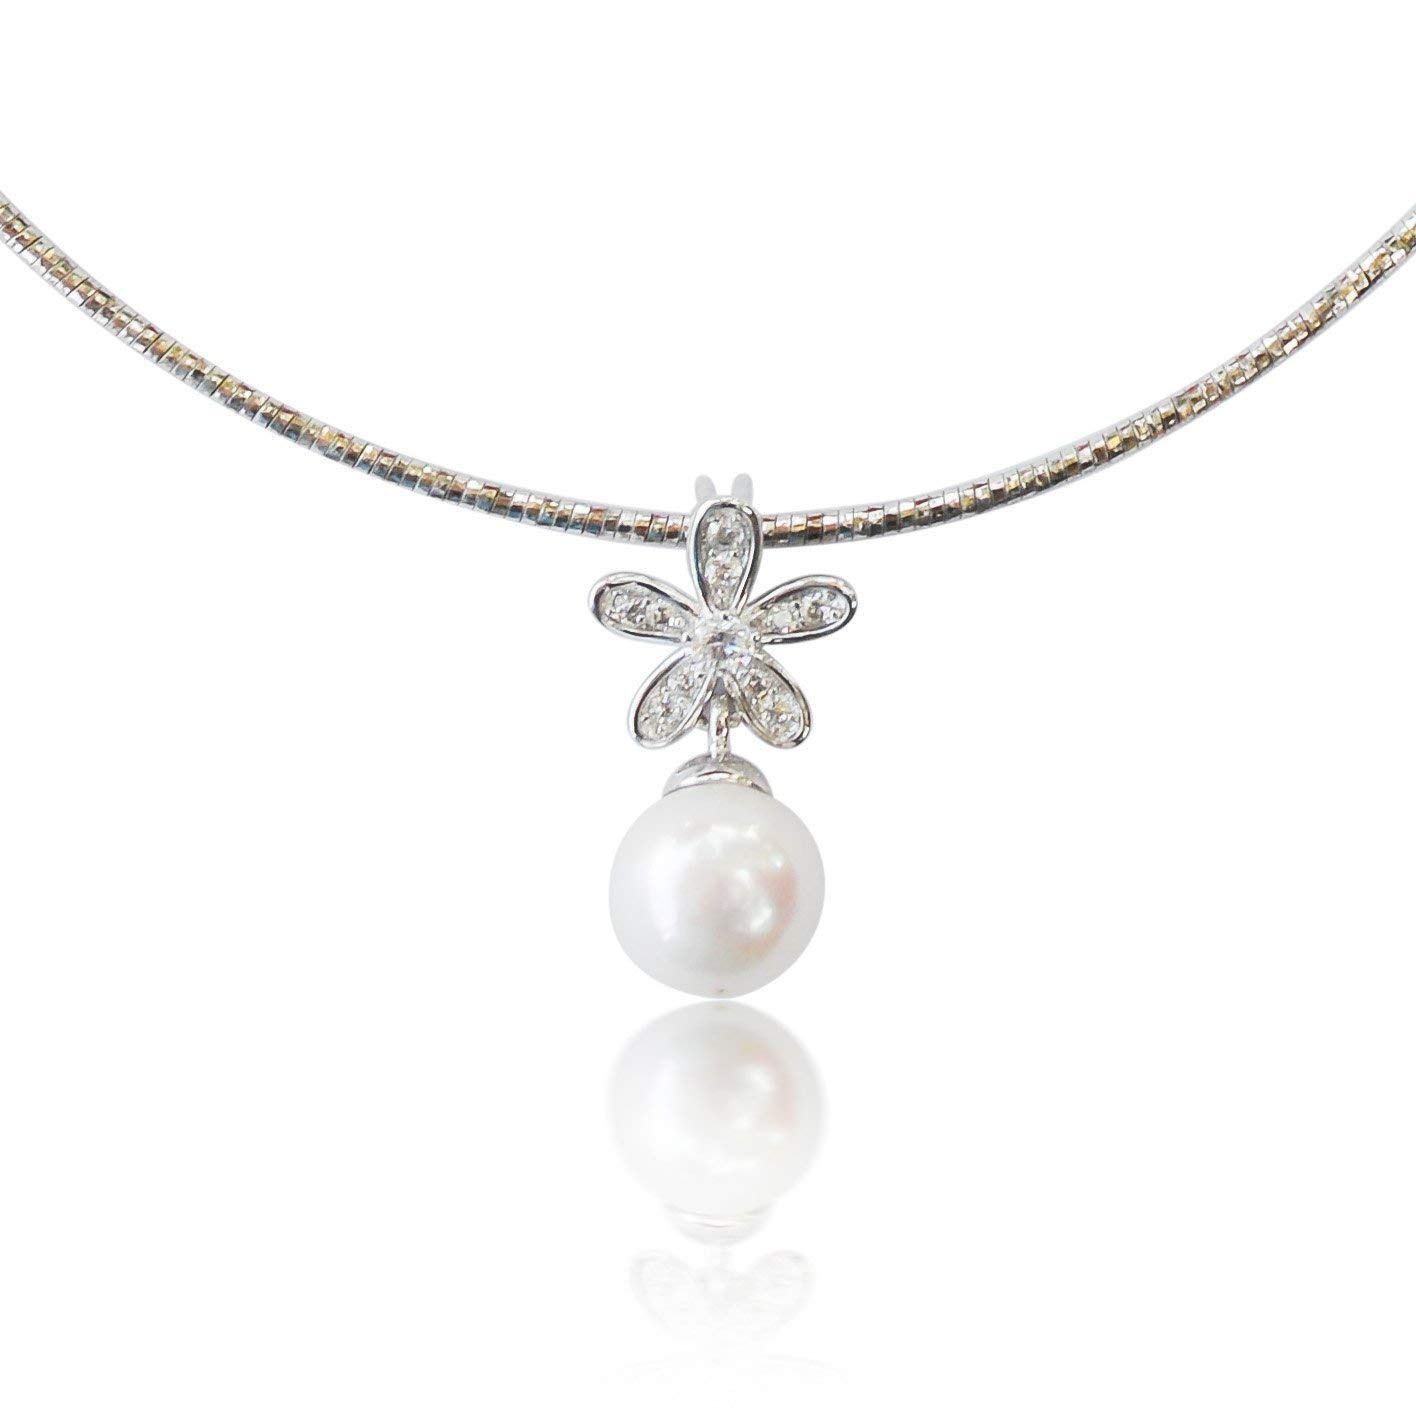 Amazon Com 10k White Gold Single Omega Choker Necklace Handmade With Stunning White Freshwater Pearl And Flower Cz Diamond Pendant Simple And Beautiful Drop Necklace 16 Inch Chain With Lobster Clasp Handmade